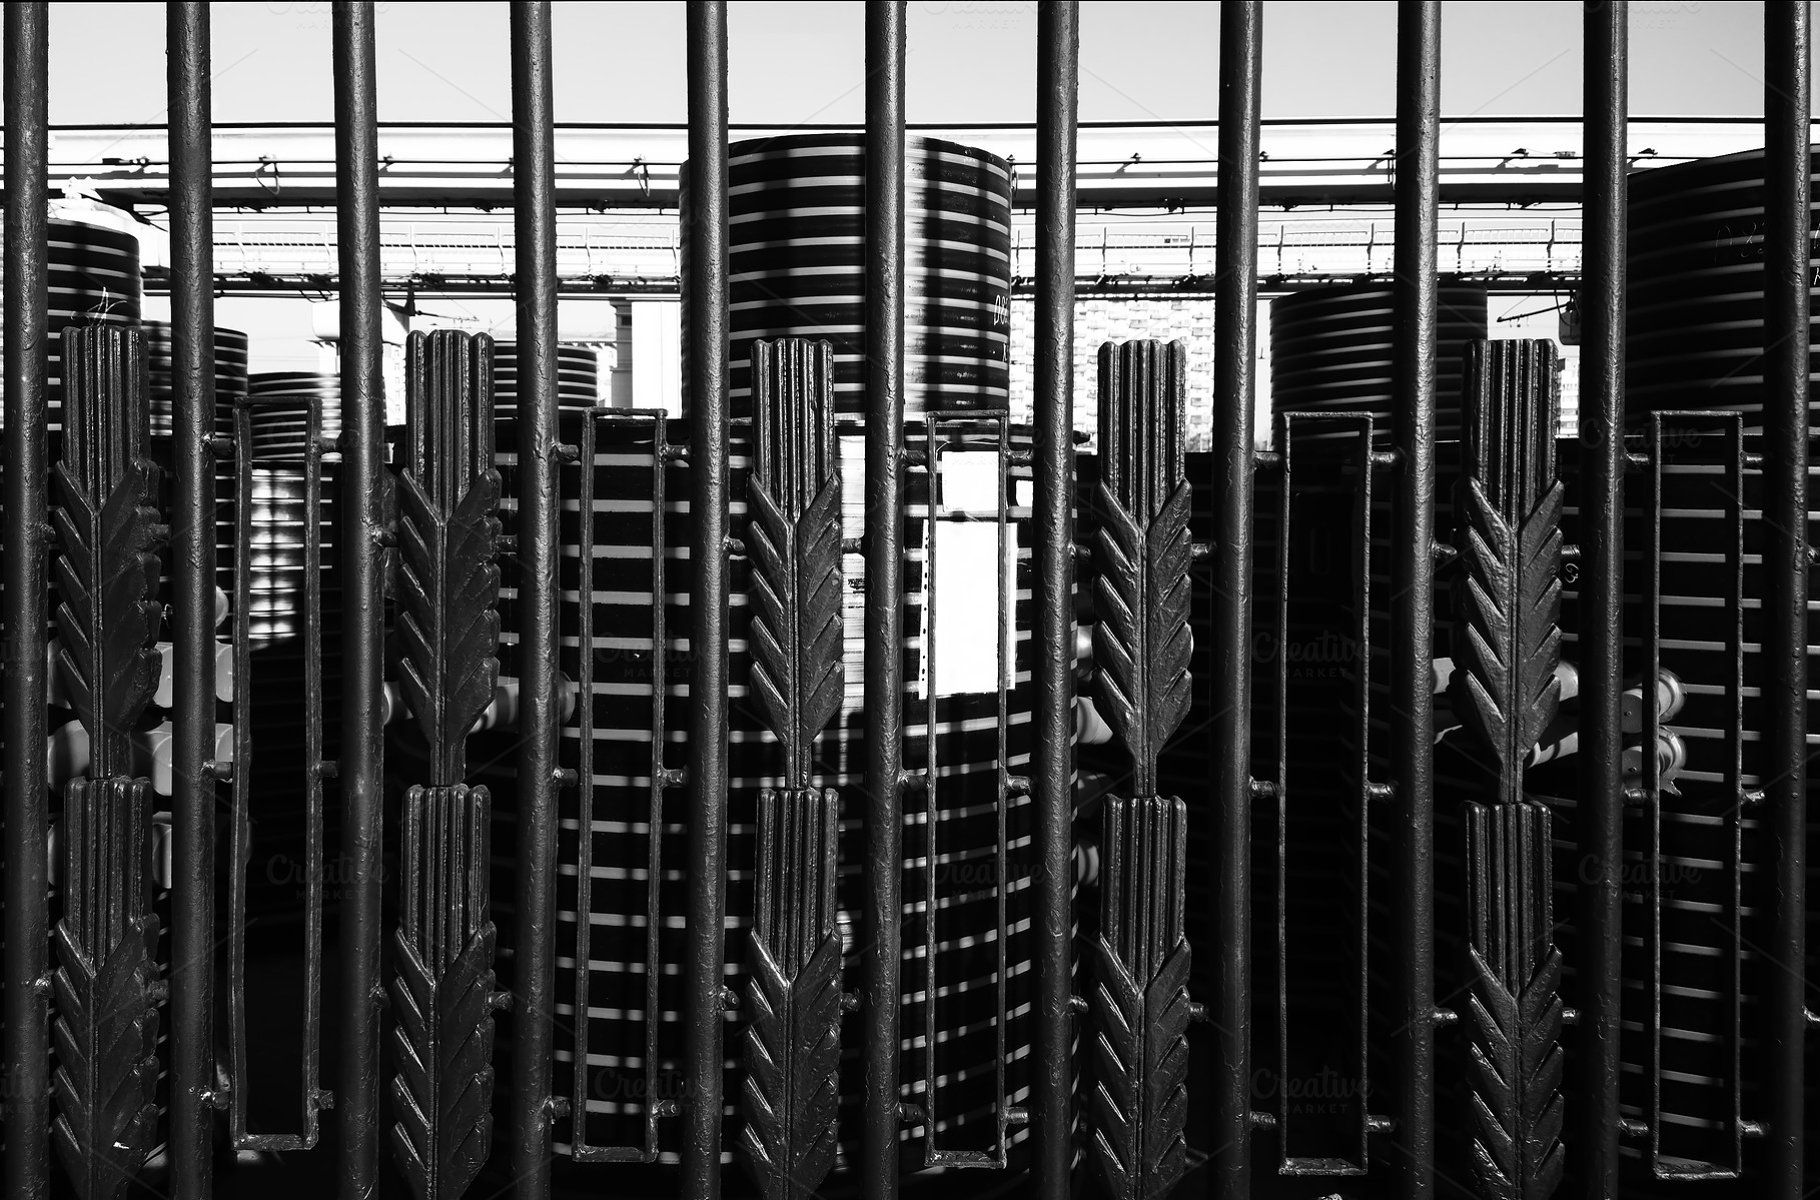 Dramatical Black And White Fence Abstract City Background Abstract